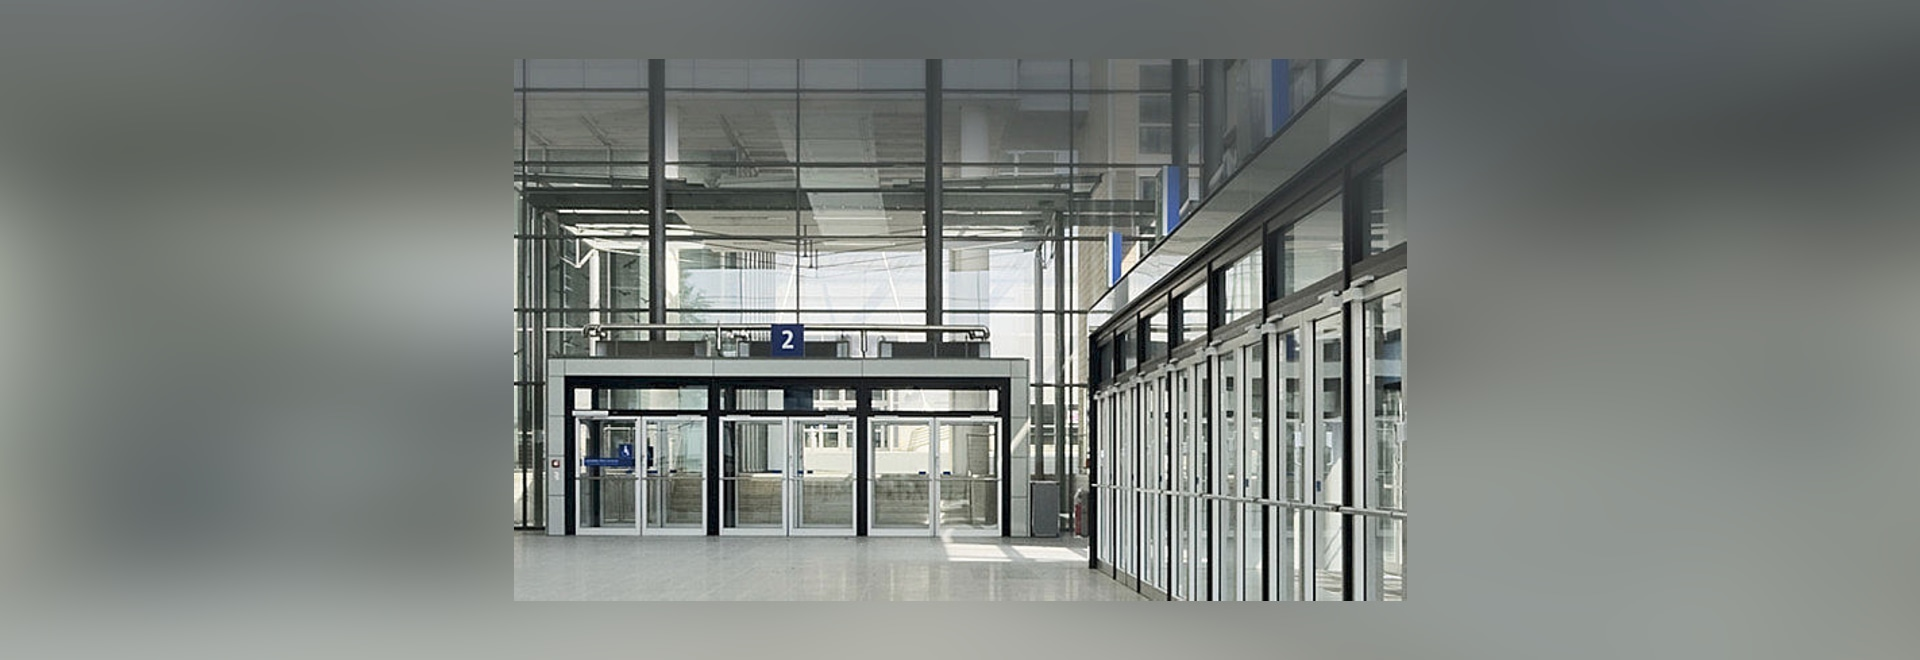 RP Technik insulated Doors Windows and Partition walls are attractive and highly insulating. & RP Technik insulated Doors Windows and Partition walls are ...